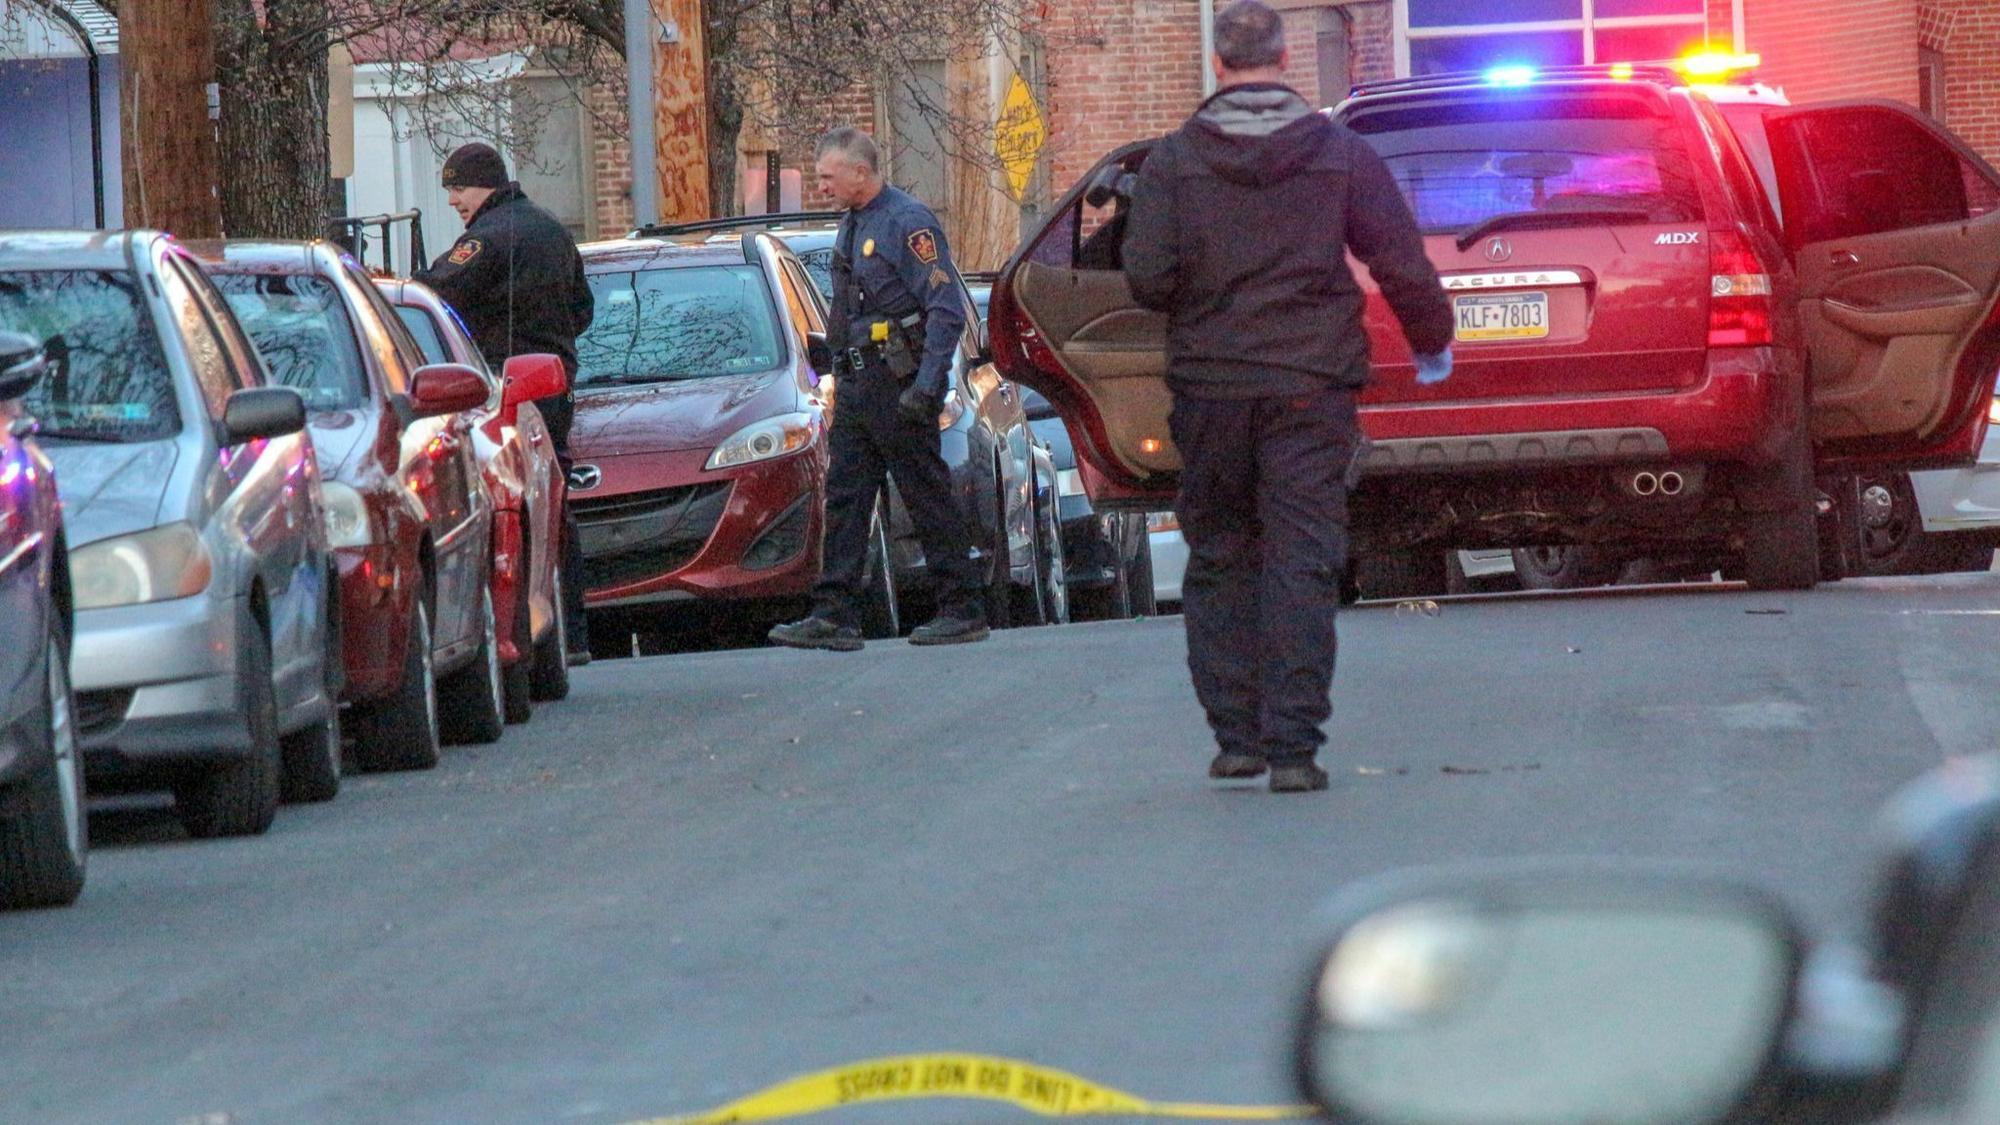 One Person Shot In Allentown, Taken To The Hospital